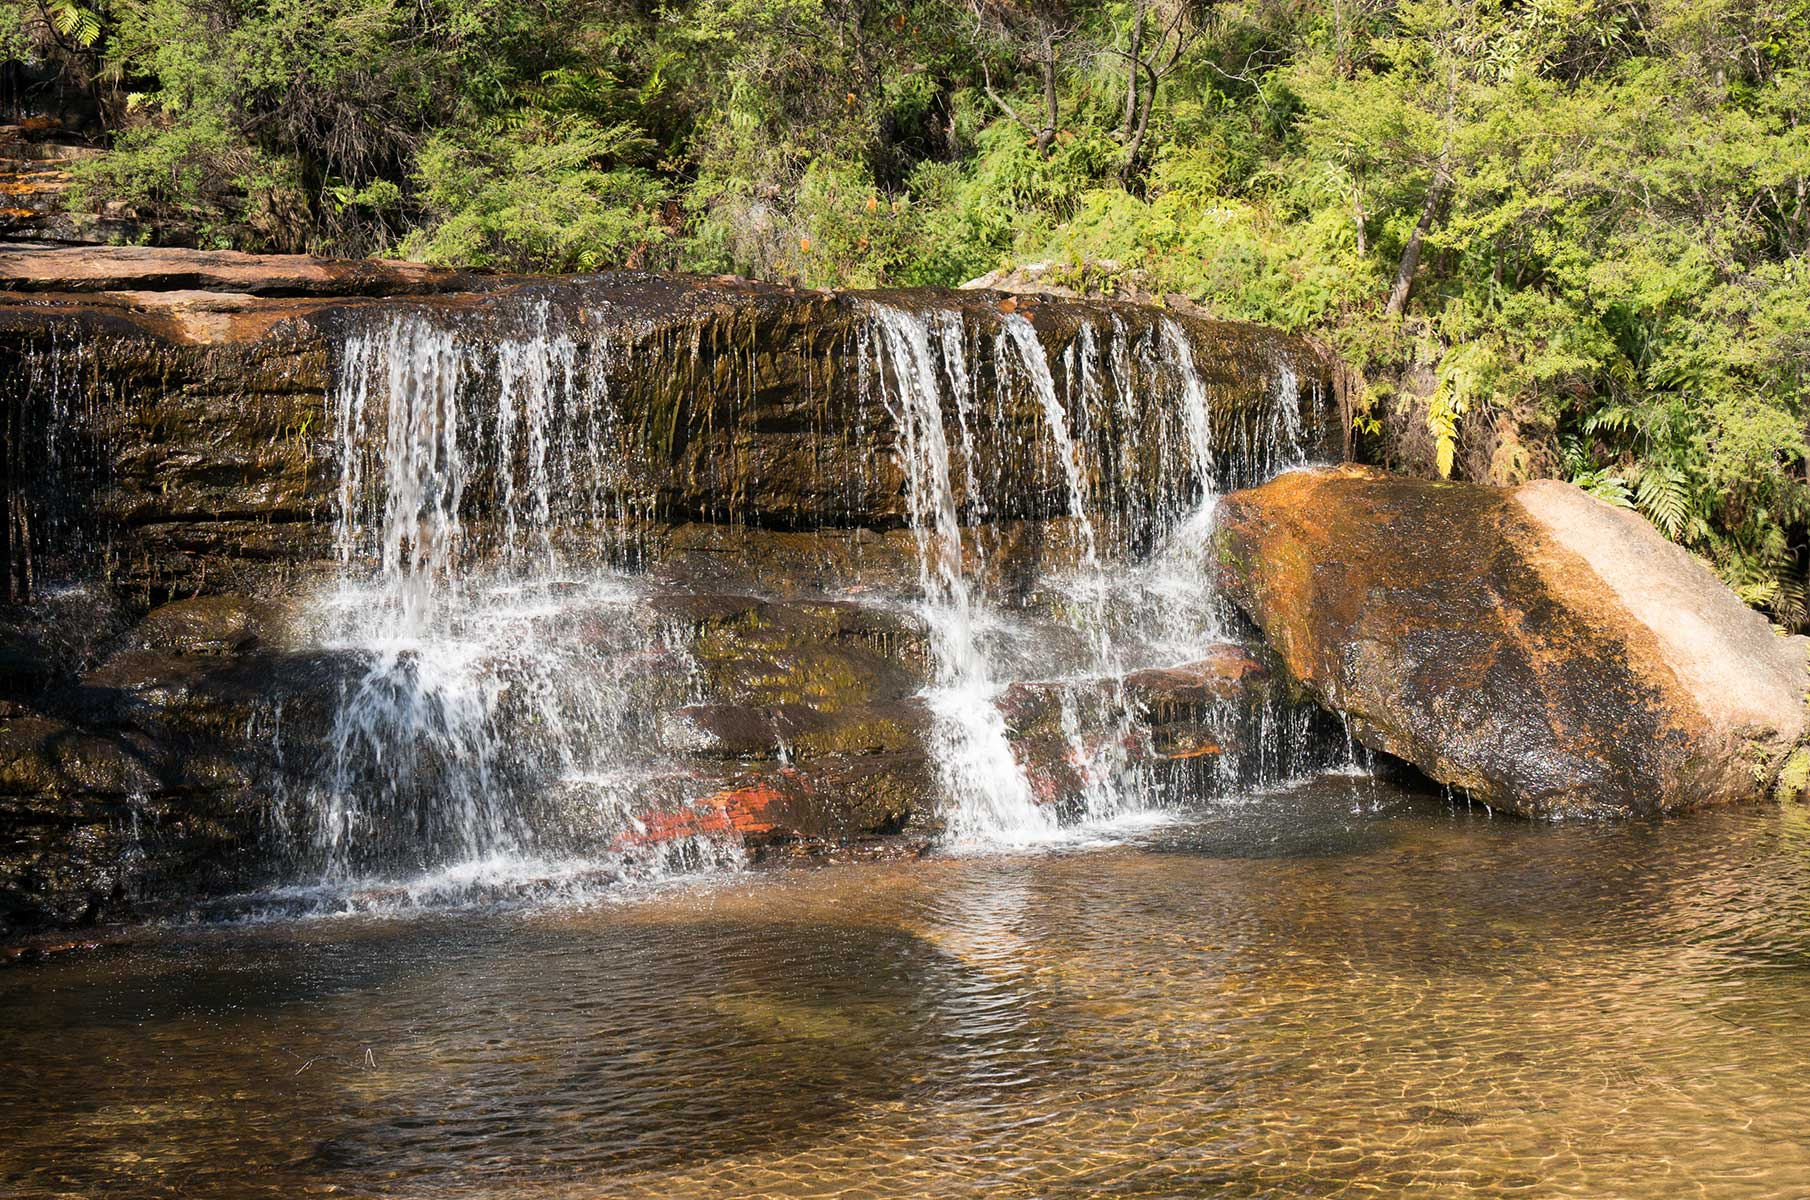 Wentworth Wasserfälle im Blue Mountains Nationalpark, Australien